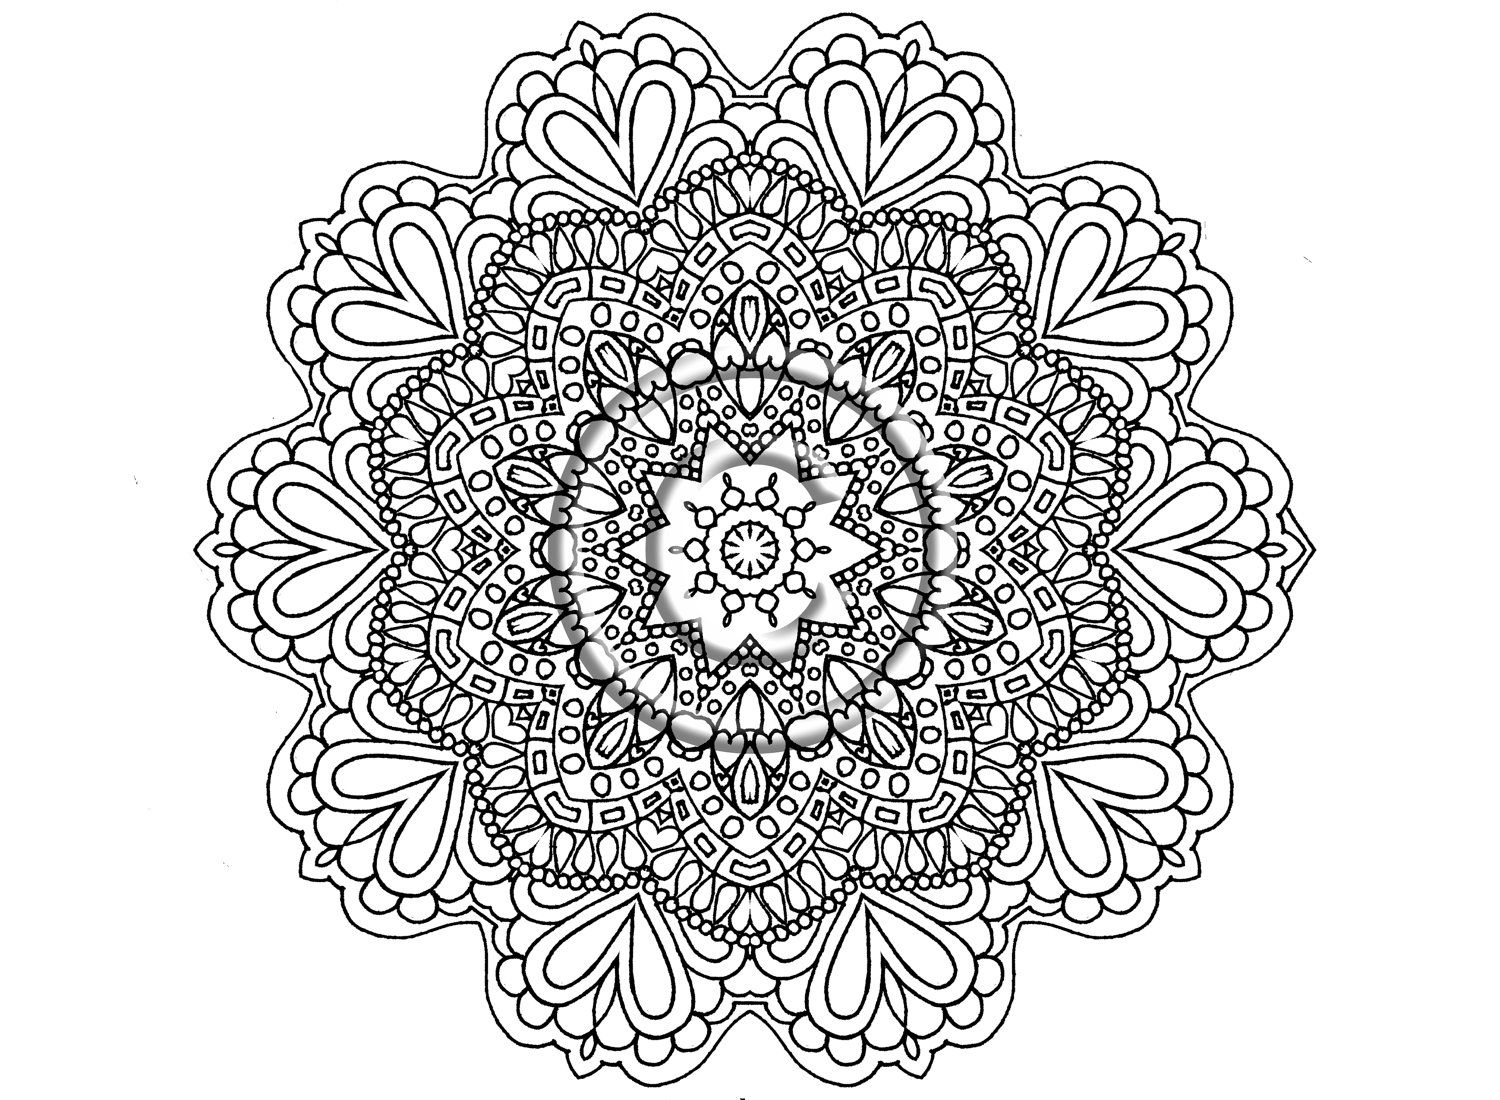 Instant Download Coloring Page Hand Drawn Zentangle